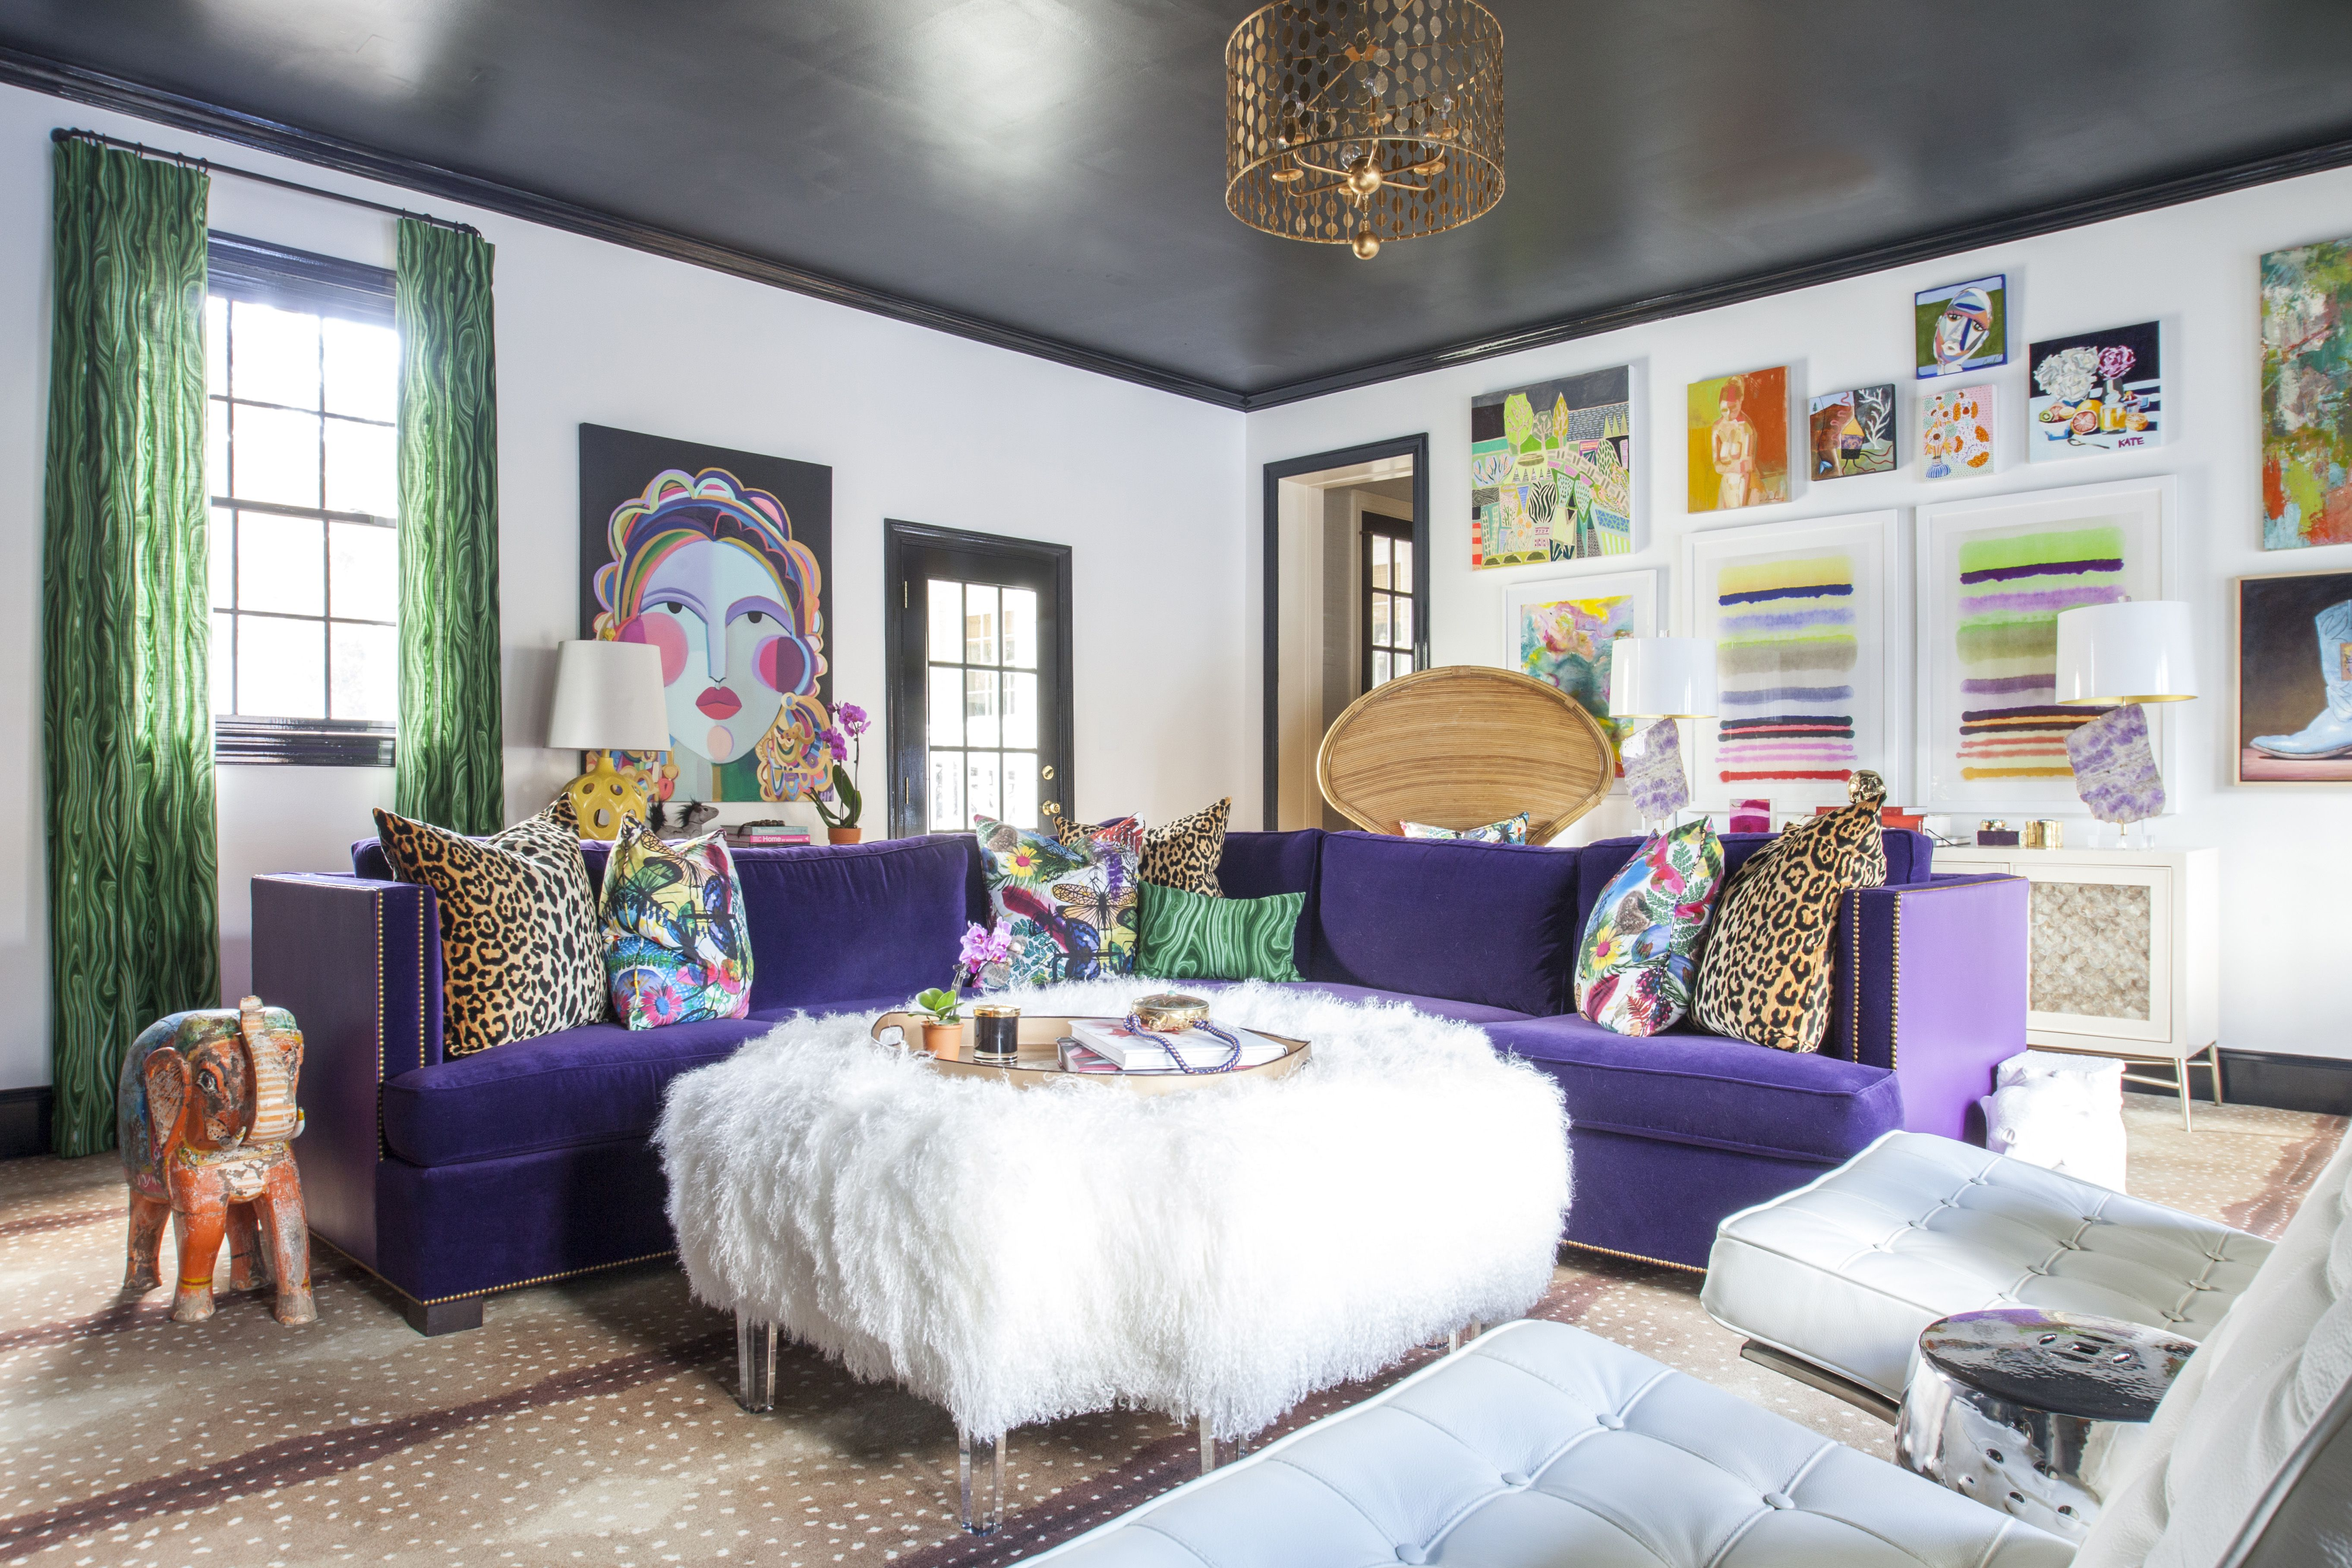 Best Of Purple and Tan Living Room